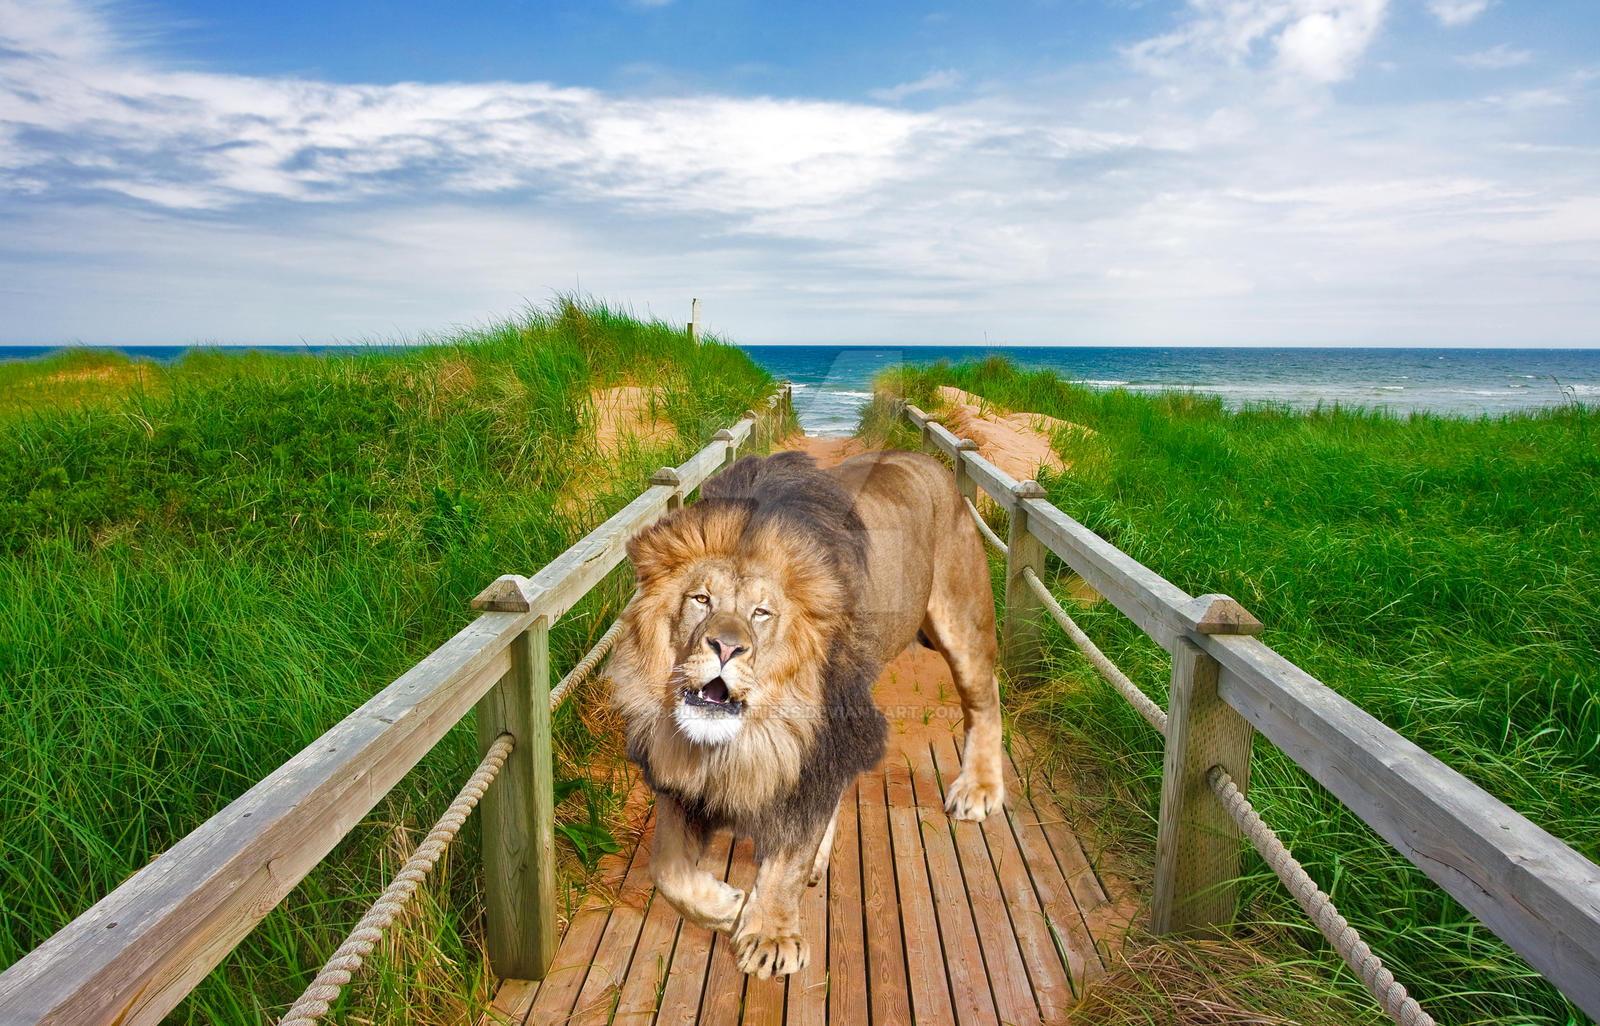 Beach Boardwalk Lion - Exclusive Premade Stock by somadjinn